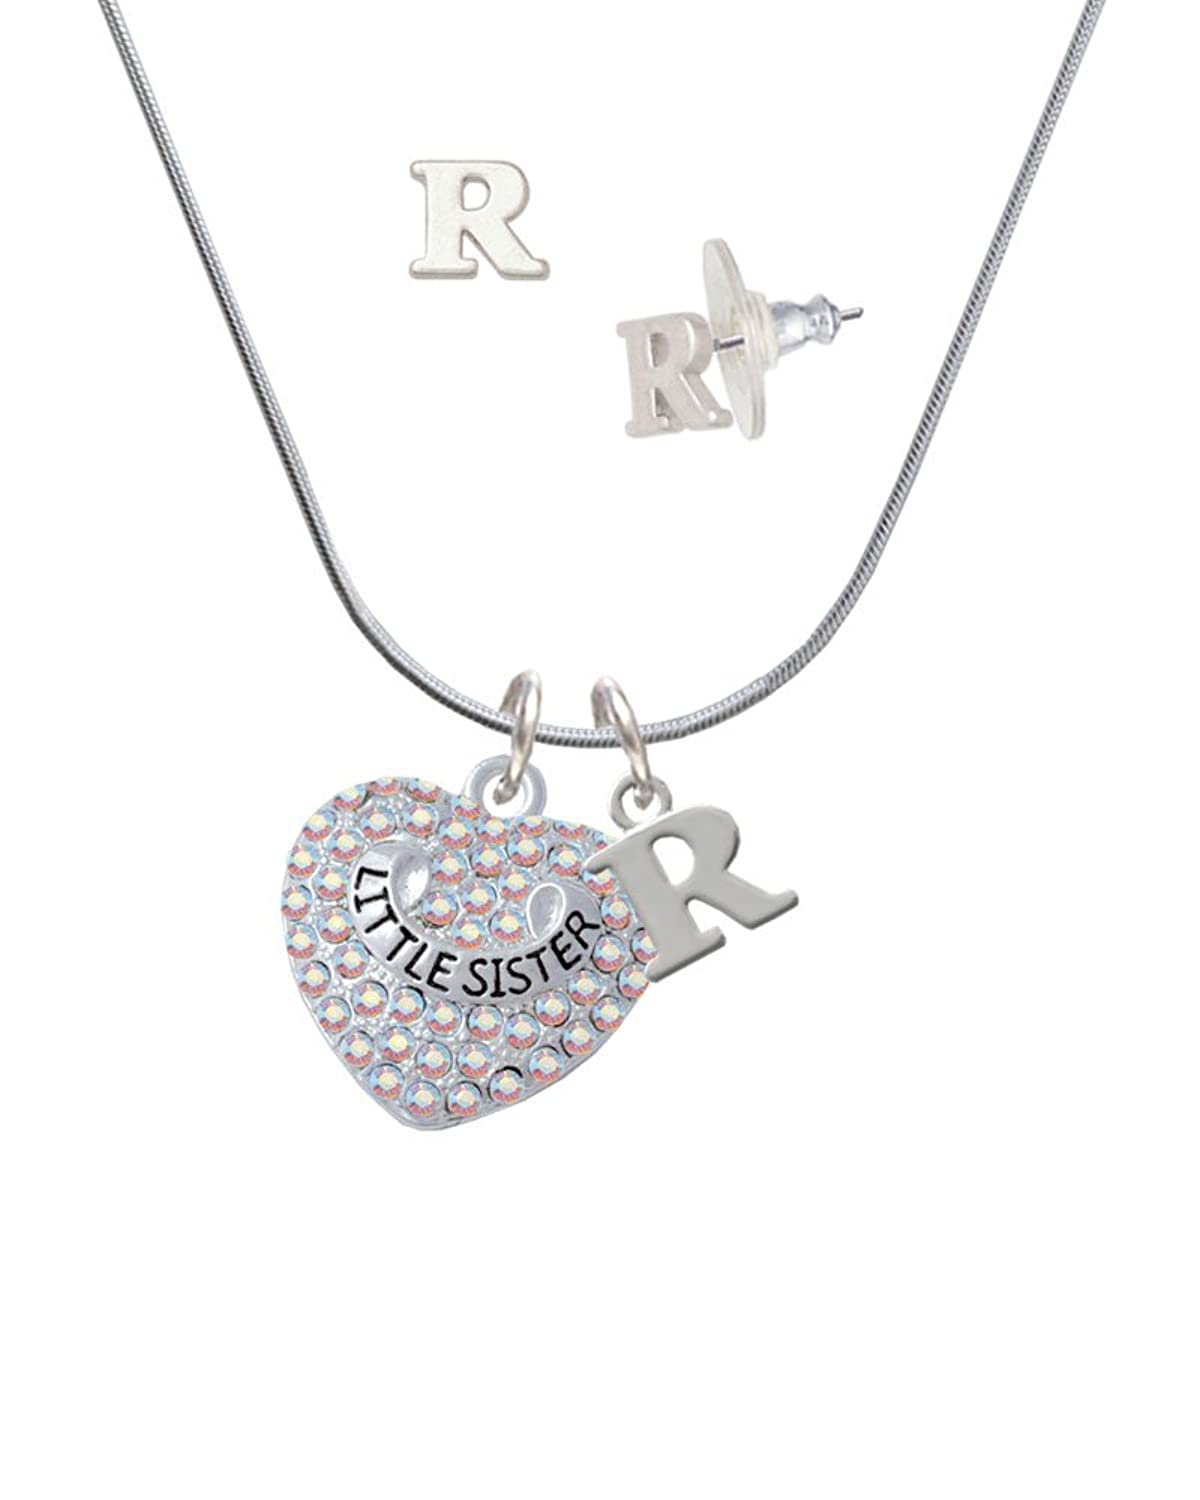 Little Sister on AB Crystal Heart - R Initial Charm Necklace and Stud Earrings Jewelry Set